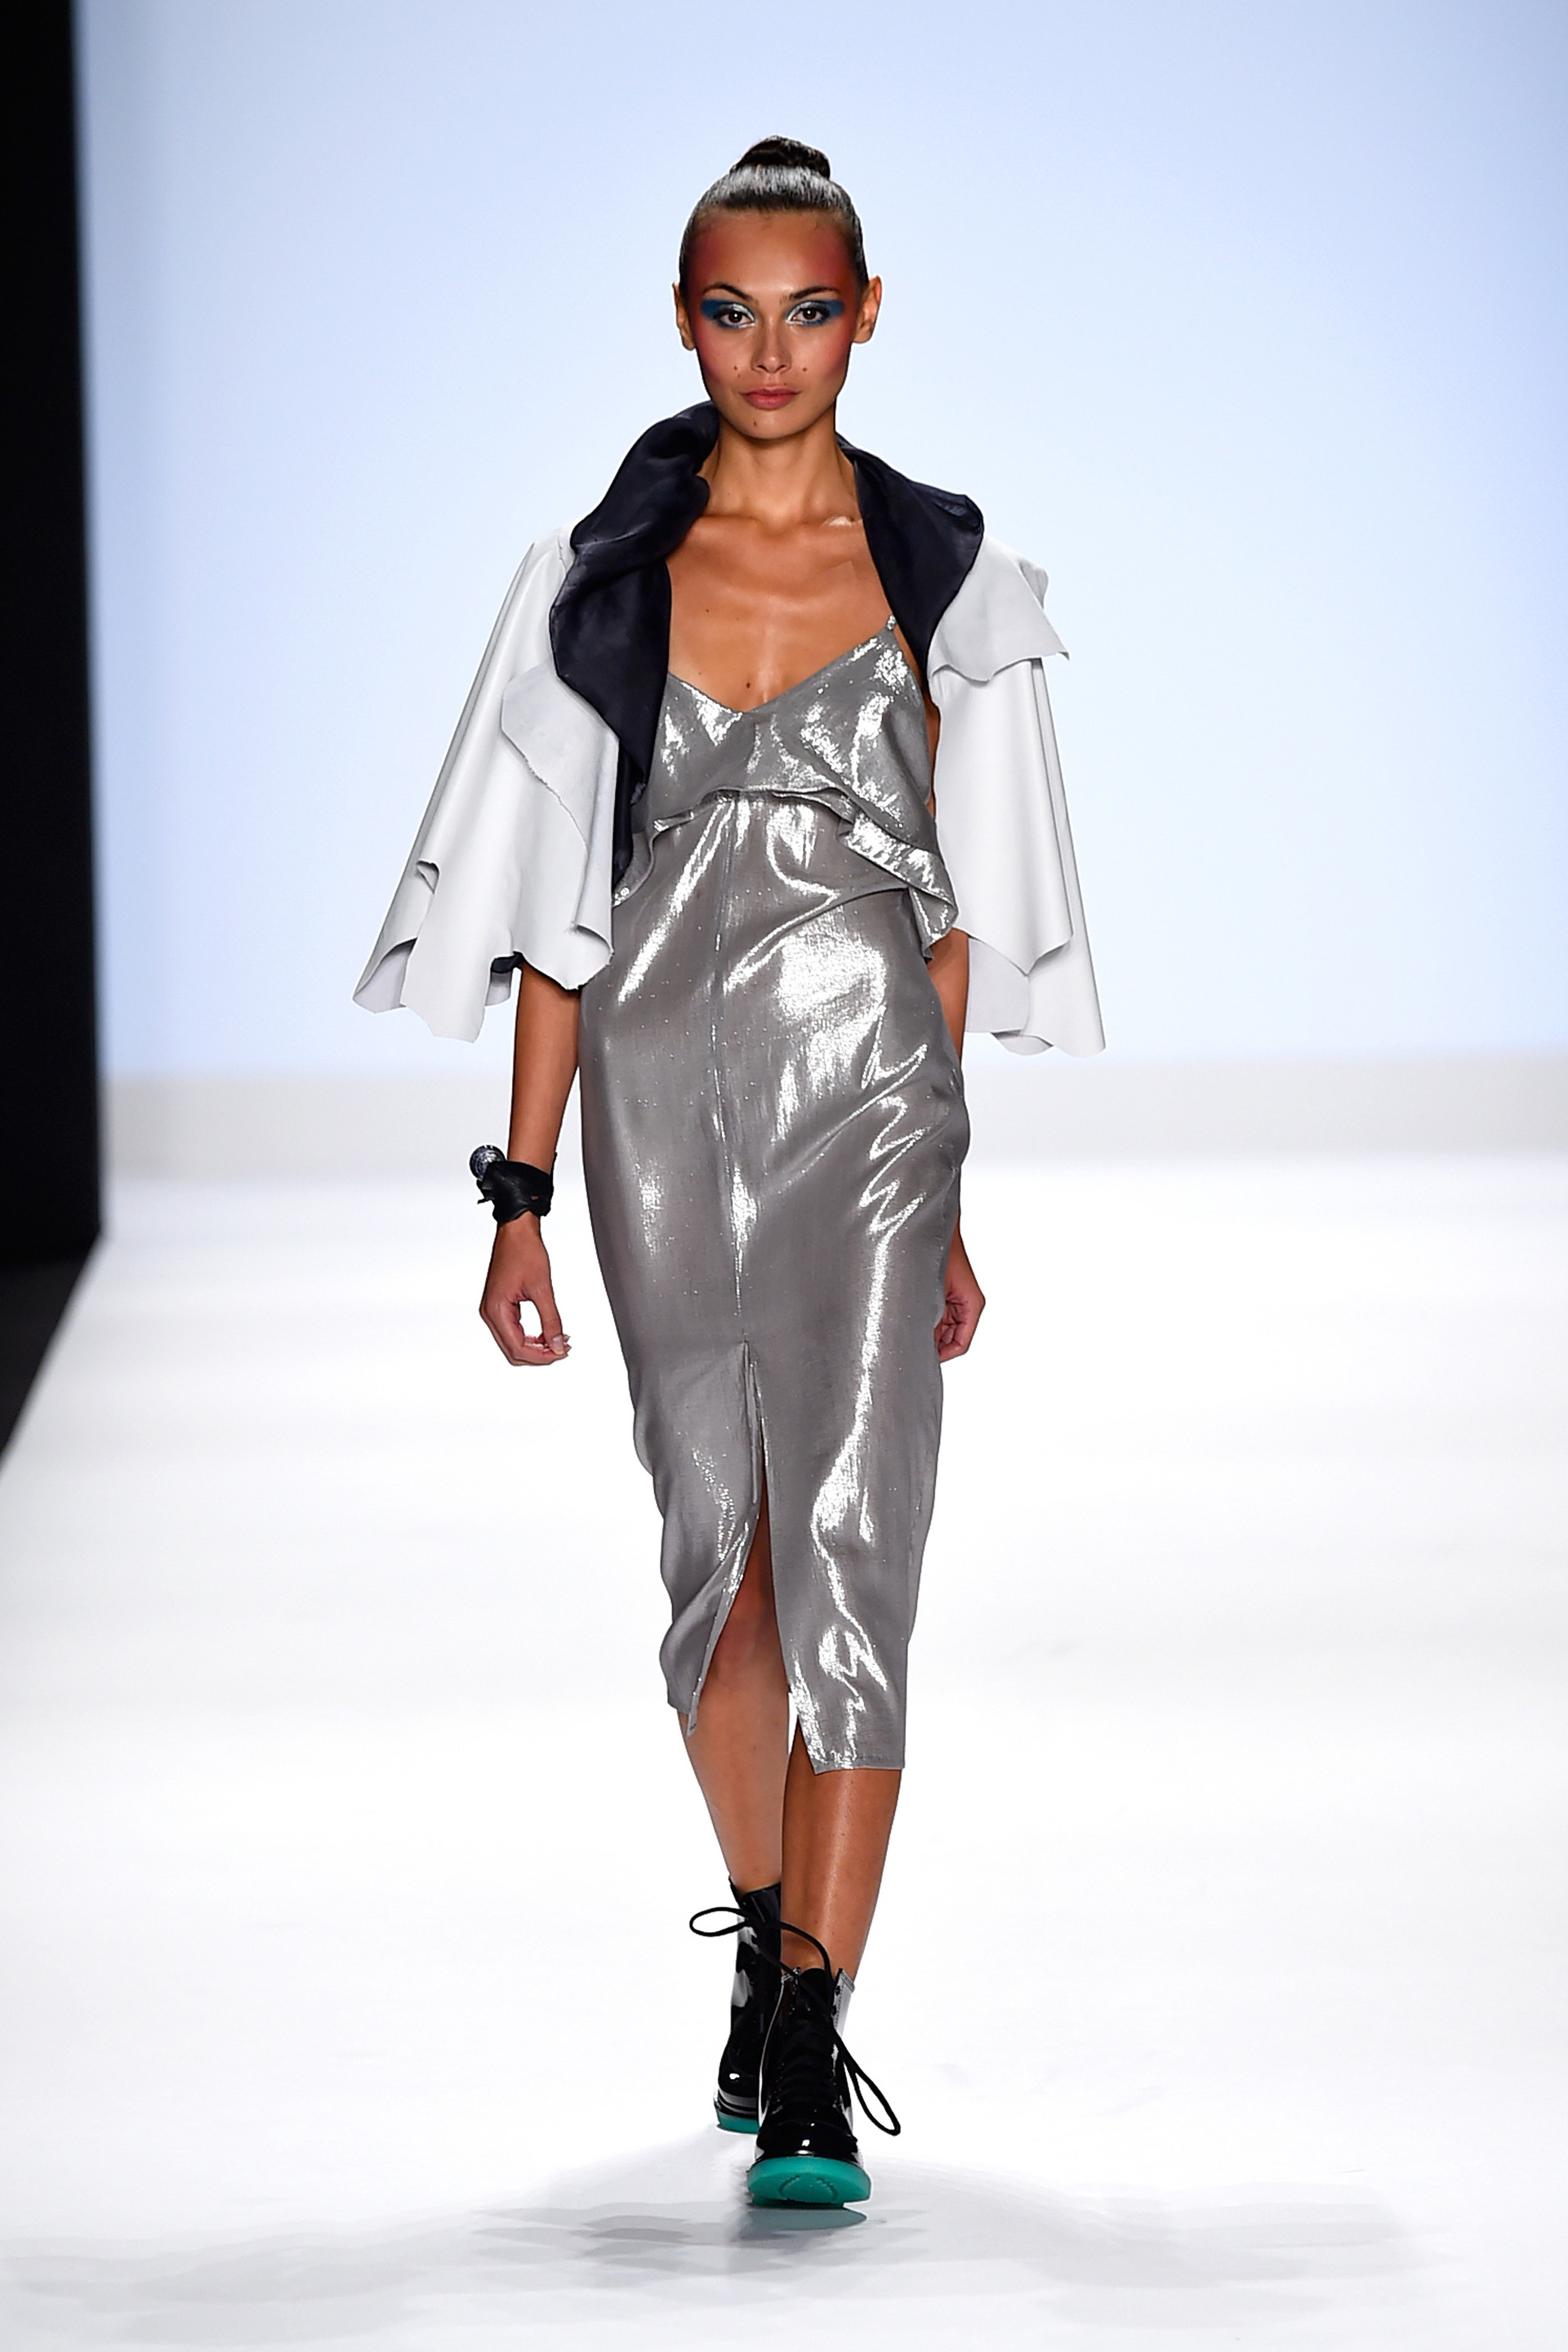 Project Runway's Fashion Week show 2